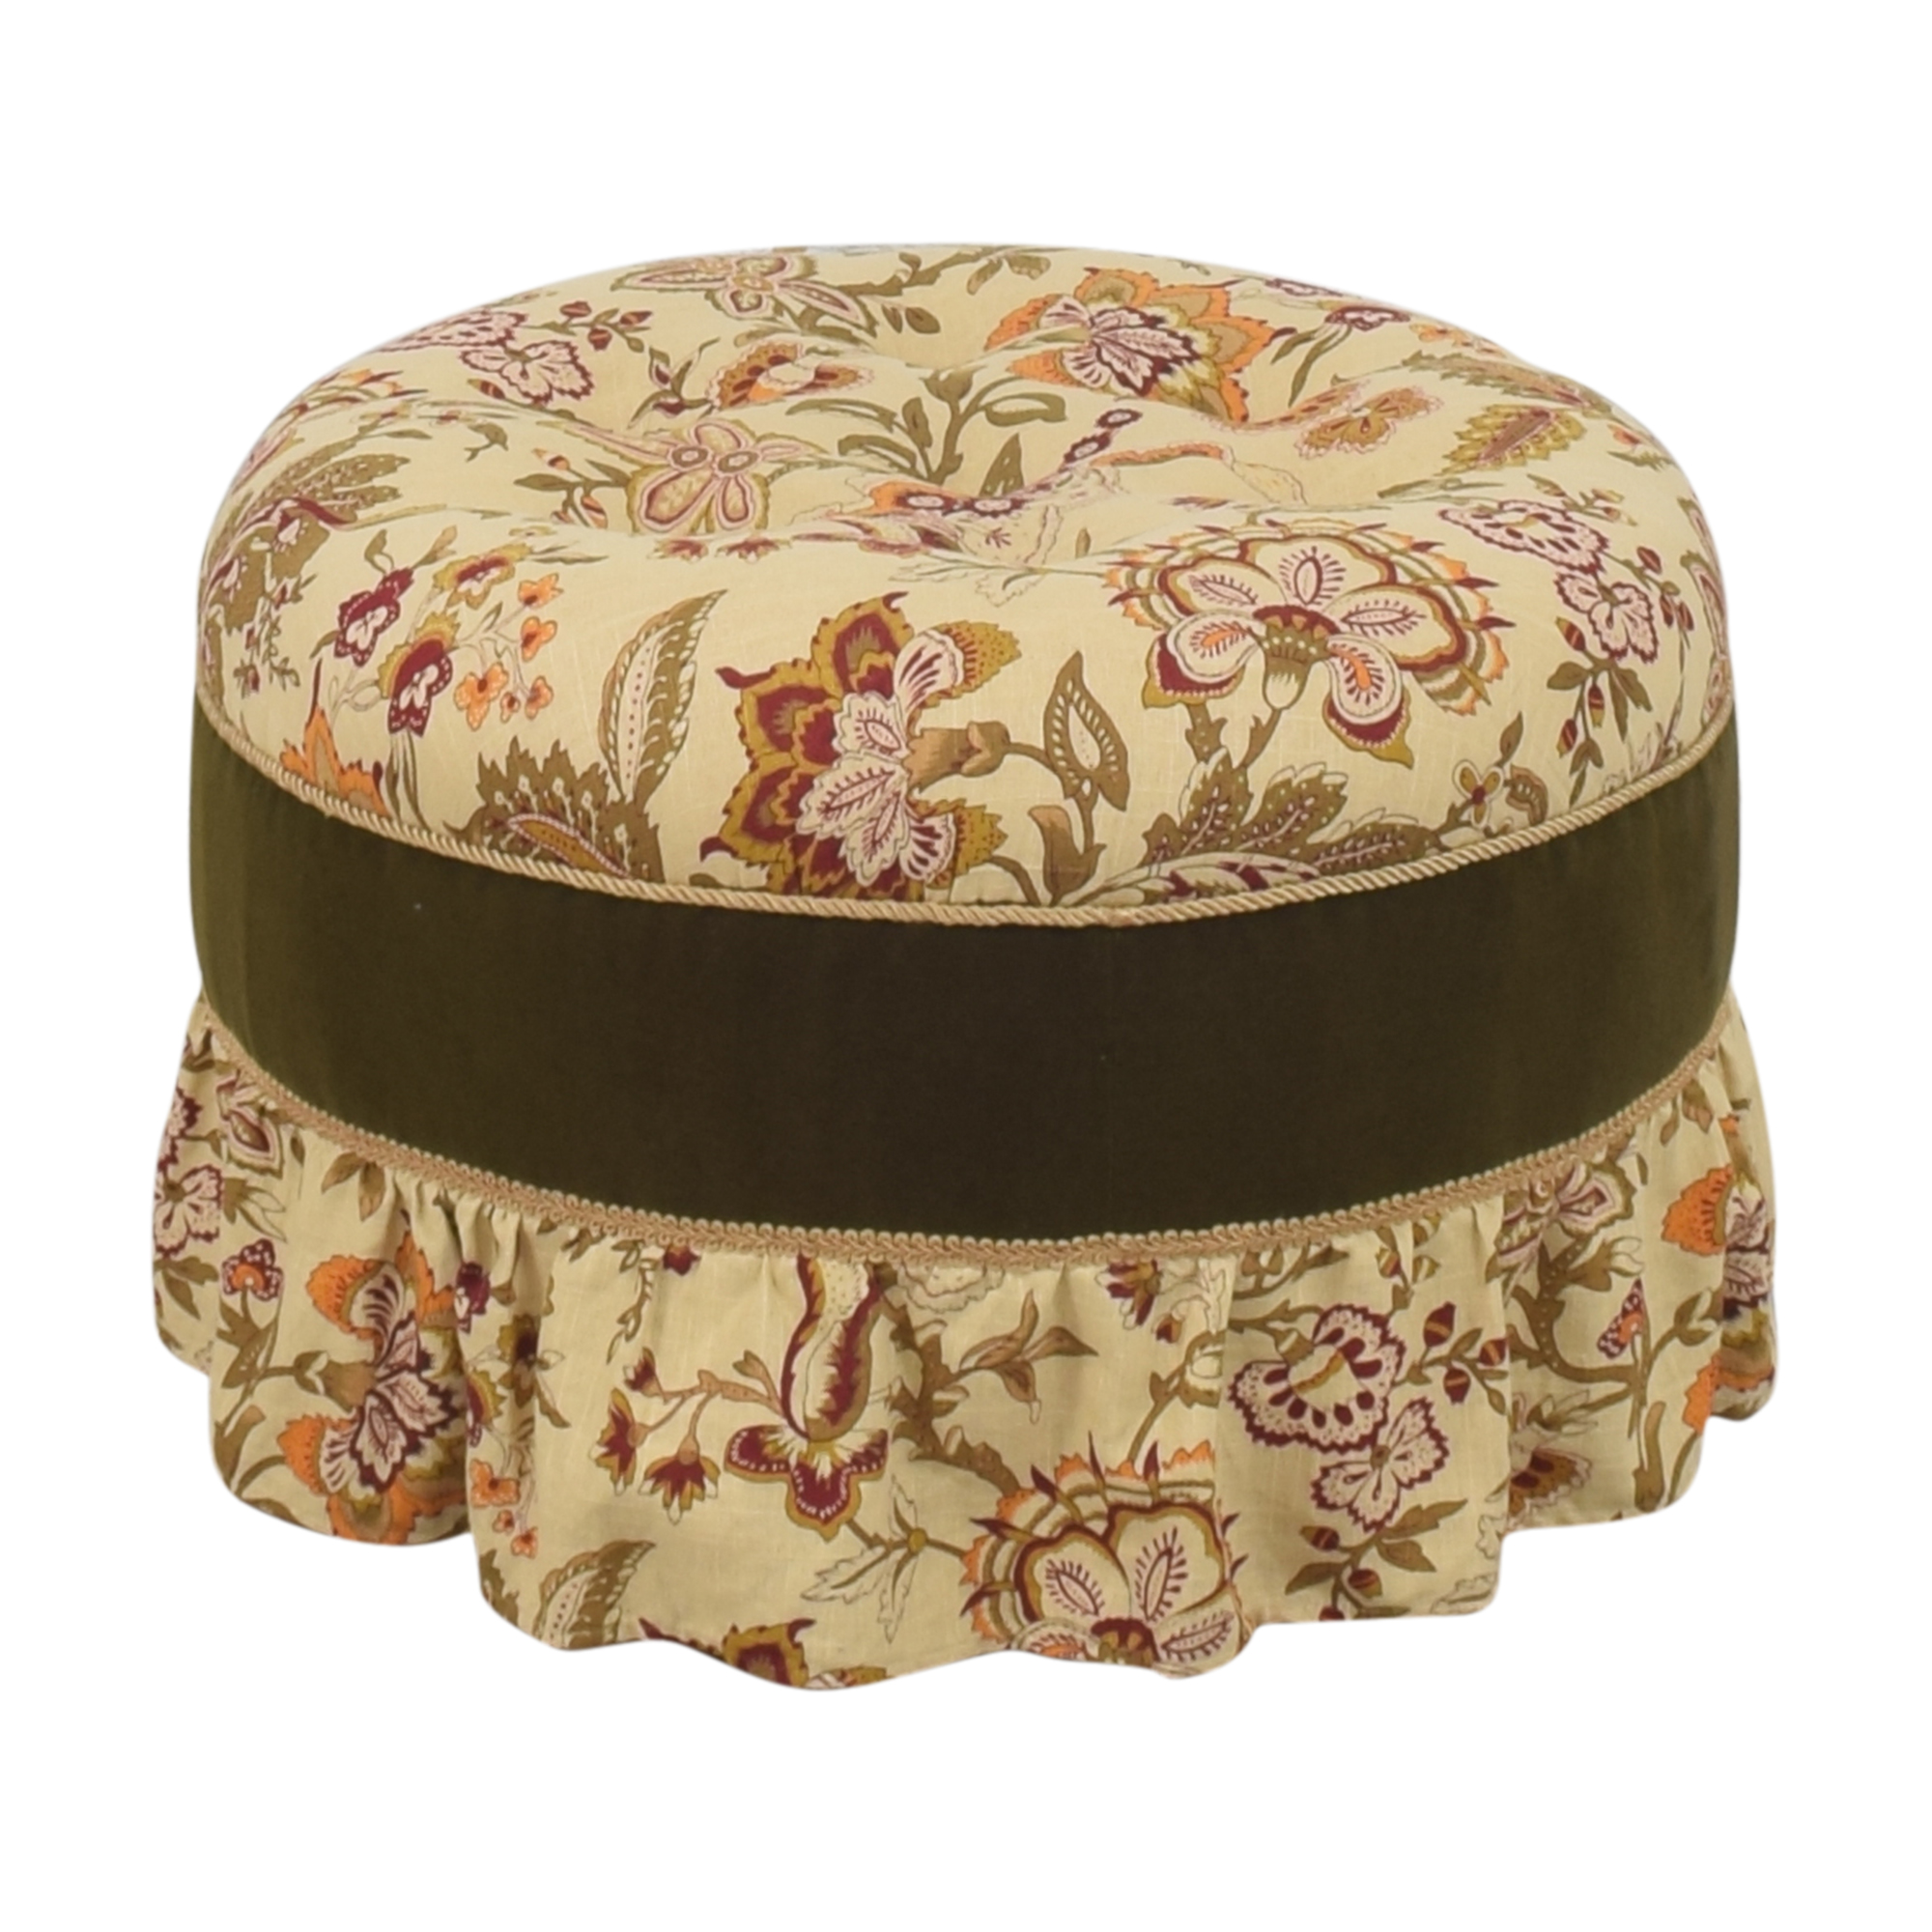 Skirted Round Ottoman second hand